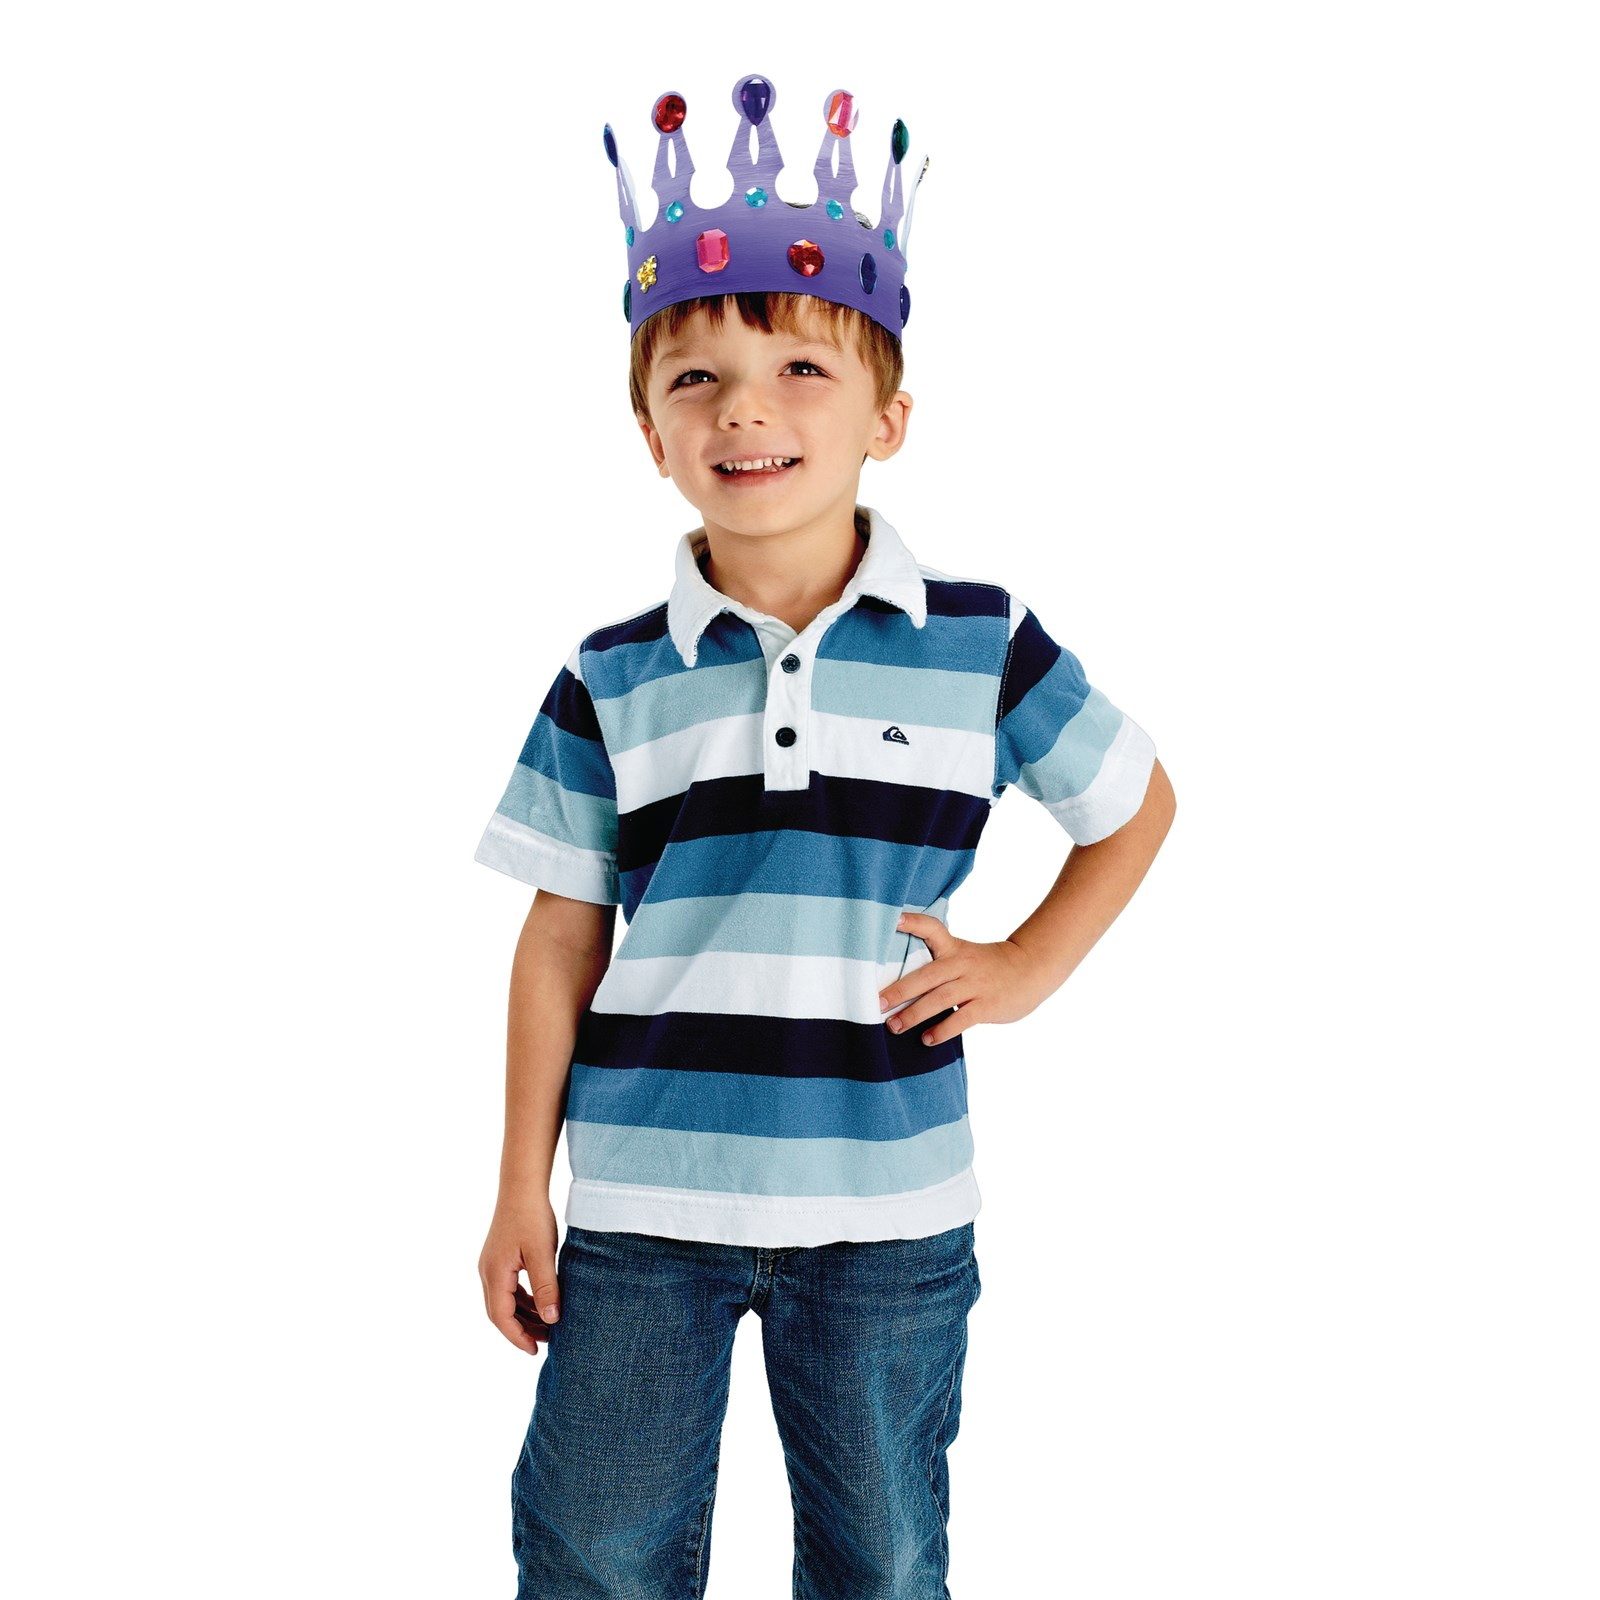 Decorate Your Own Crowns Pack of 24